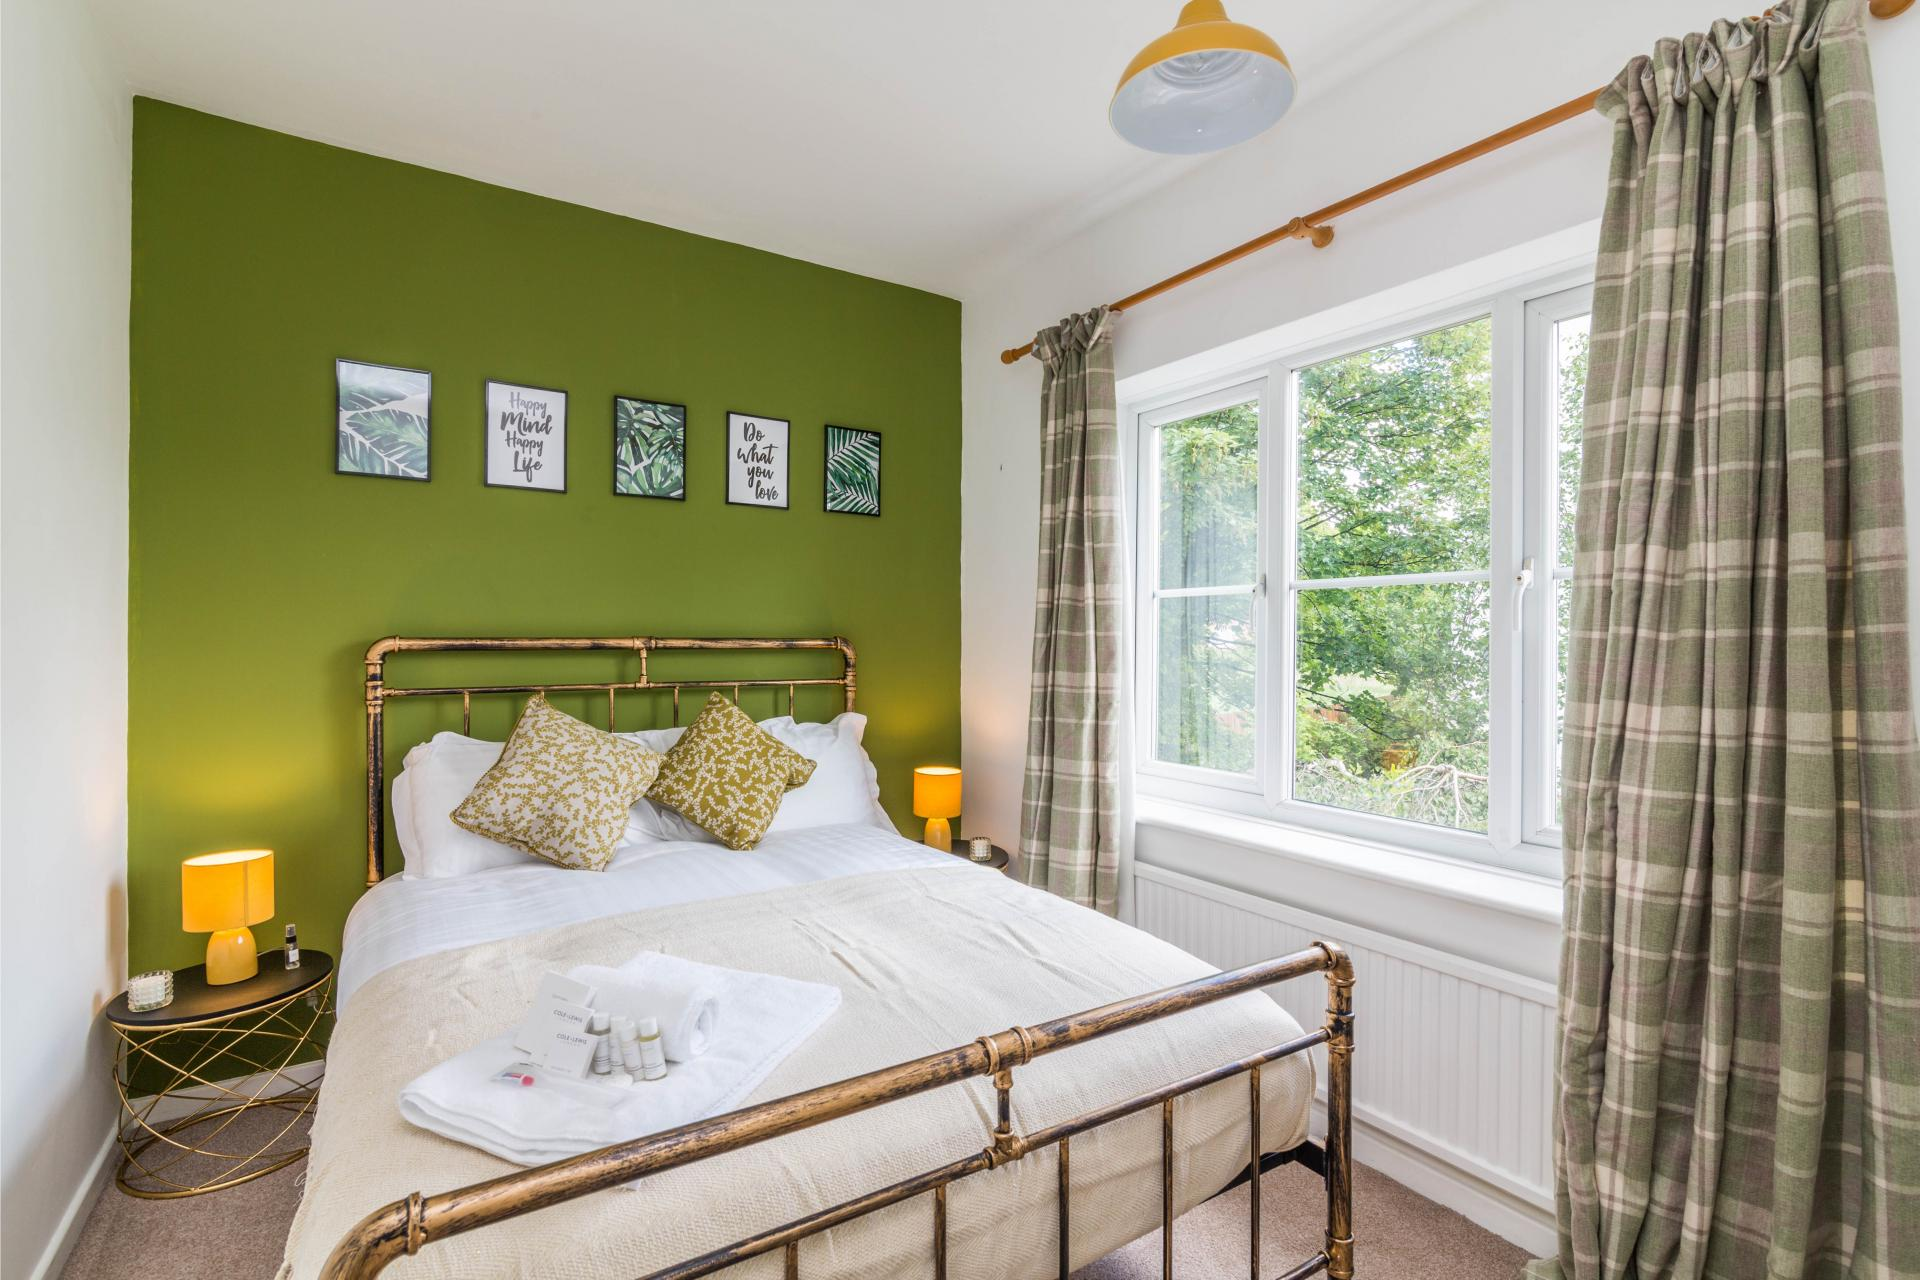 Bedroom at Mapperley House, Mapperley Park, Nottingham - Citybase Apartments